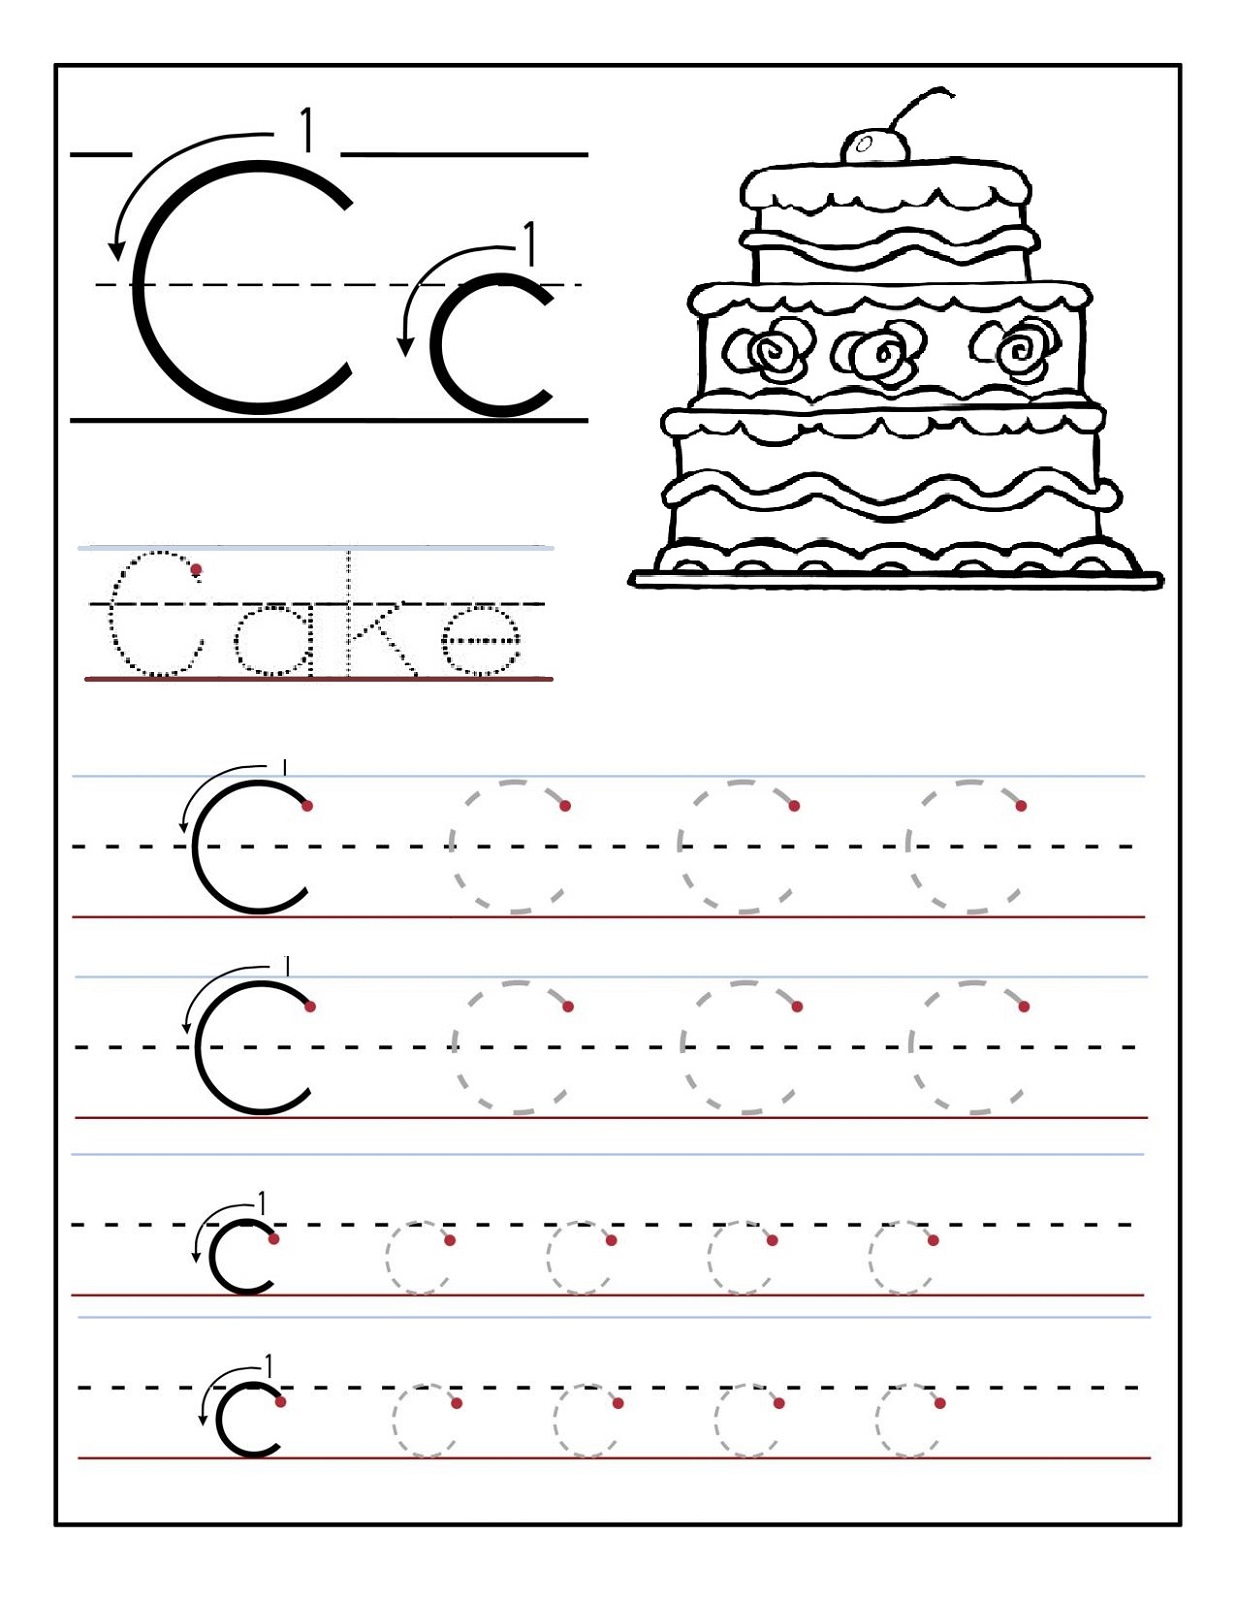 Preschool Alphabet Worksheets Cake